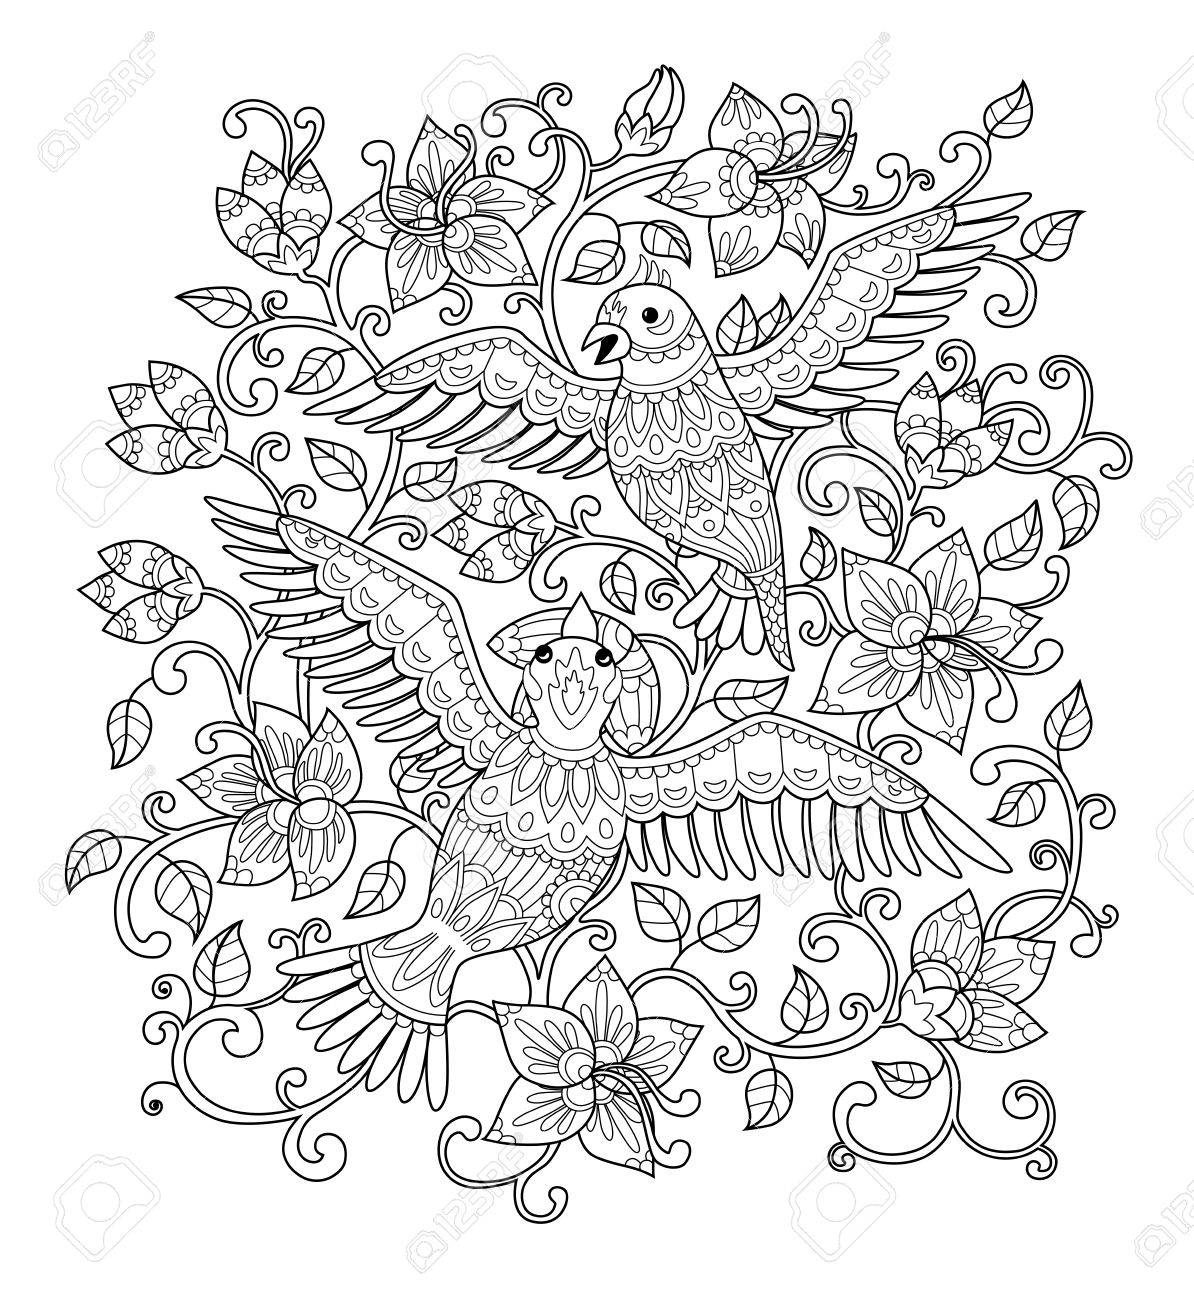 Vector Illustration Hand Drawn Decorative Outline Bird In The Bush Flowers Adult Coloring Book Page Vertical